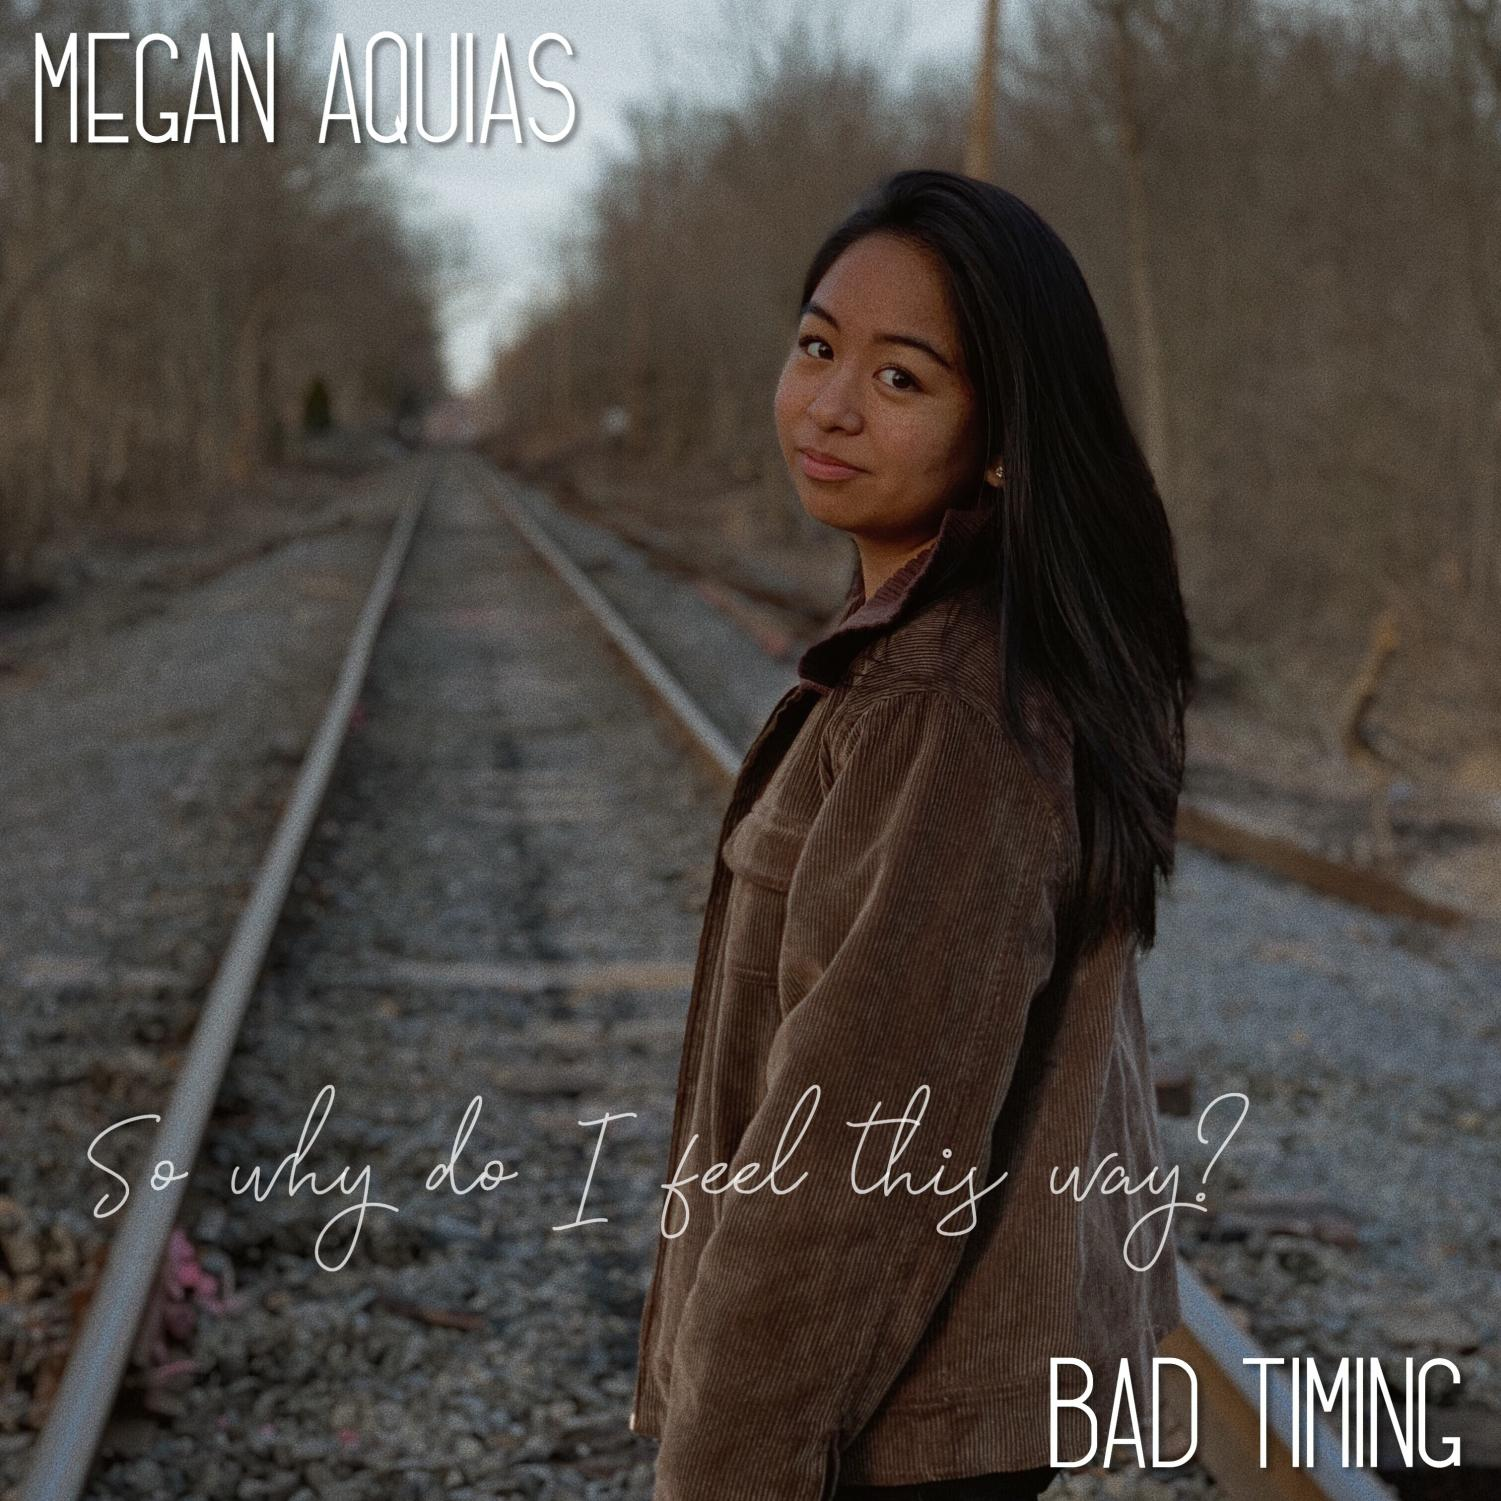 Senior Megan Aquias recently released her first single